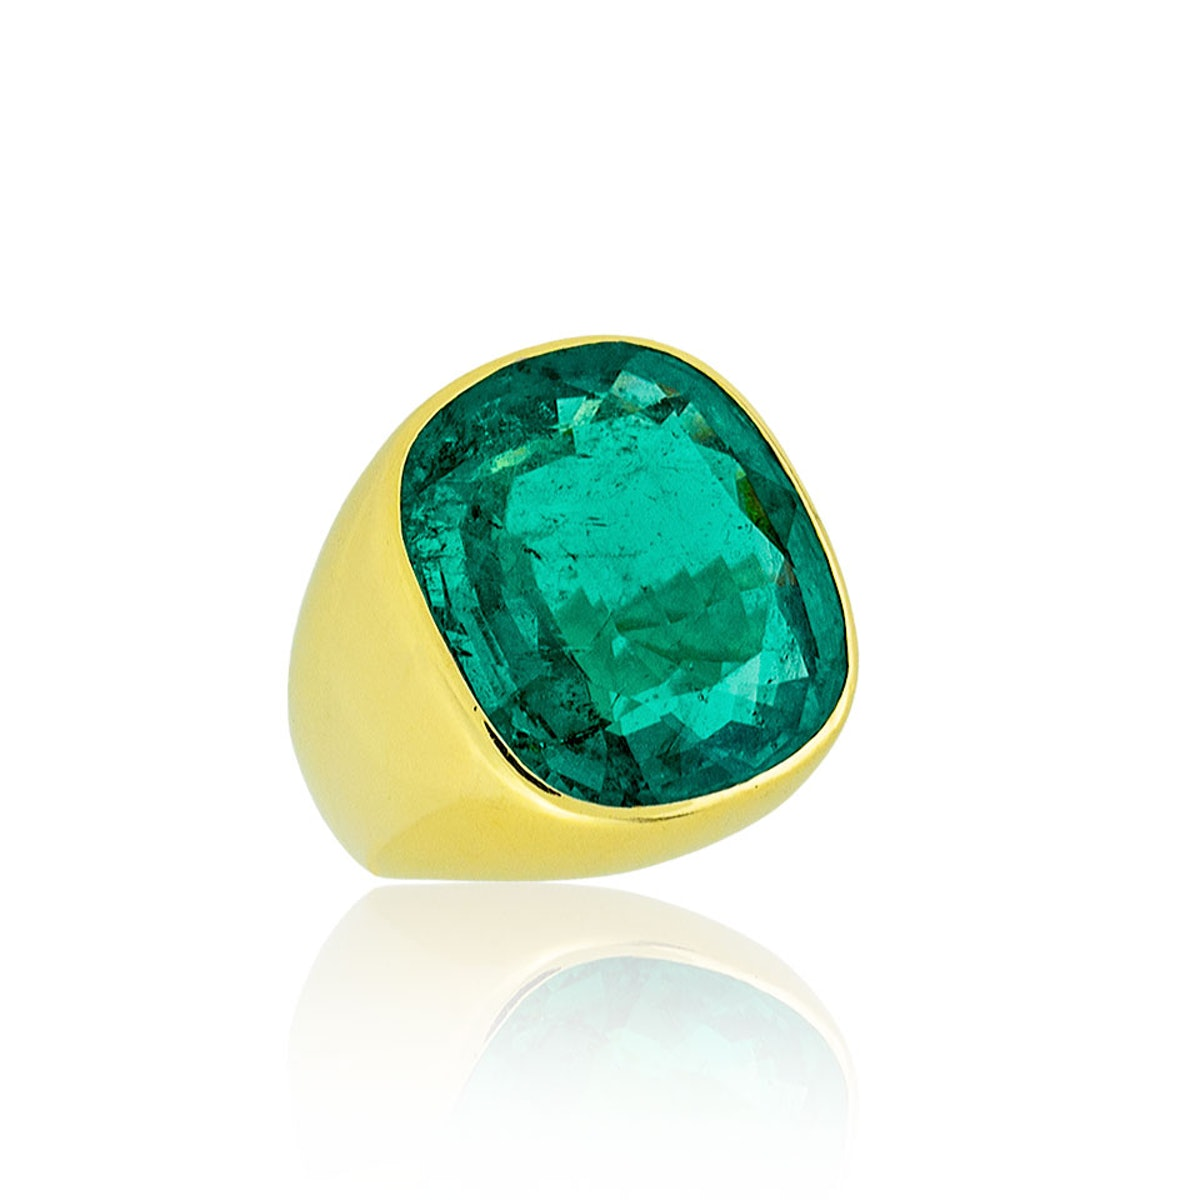 Suzanne-Belperron-at-Stephen-Russell-22-Carat-Colombian-Emerald-Ring,-Price-Upon-Request,-at-www.StephenRussell.com